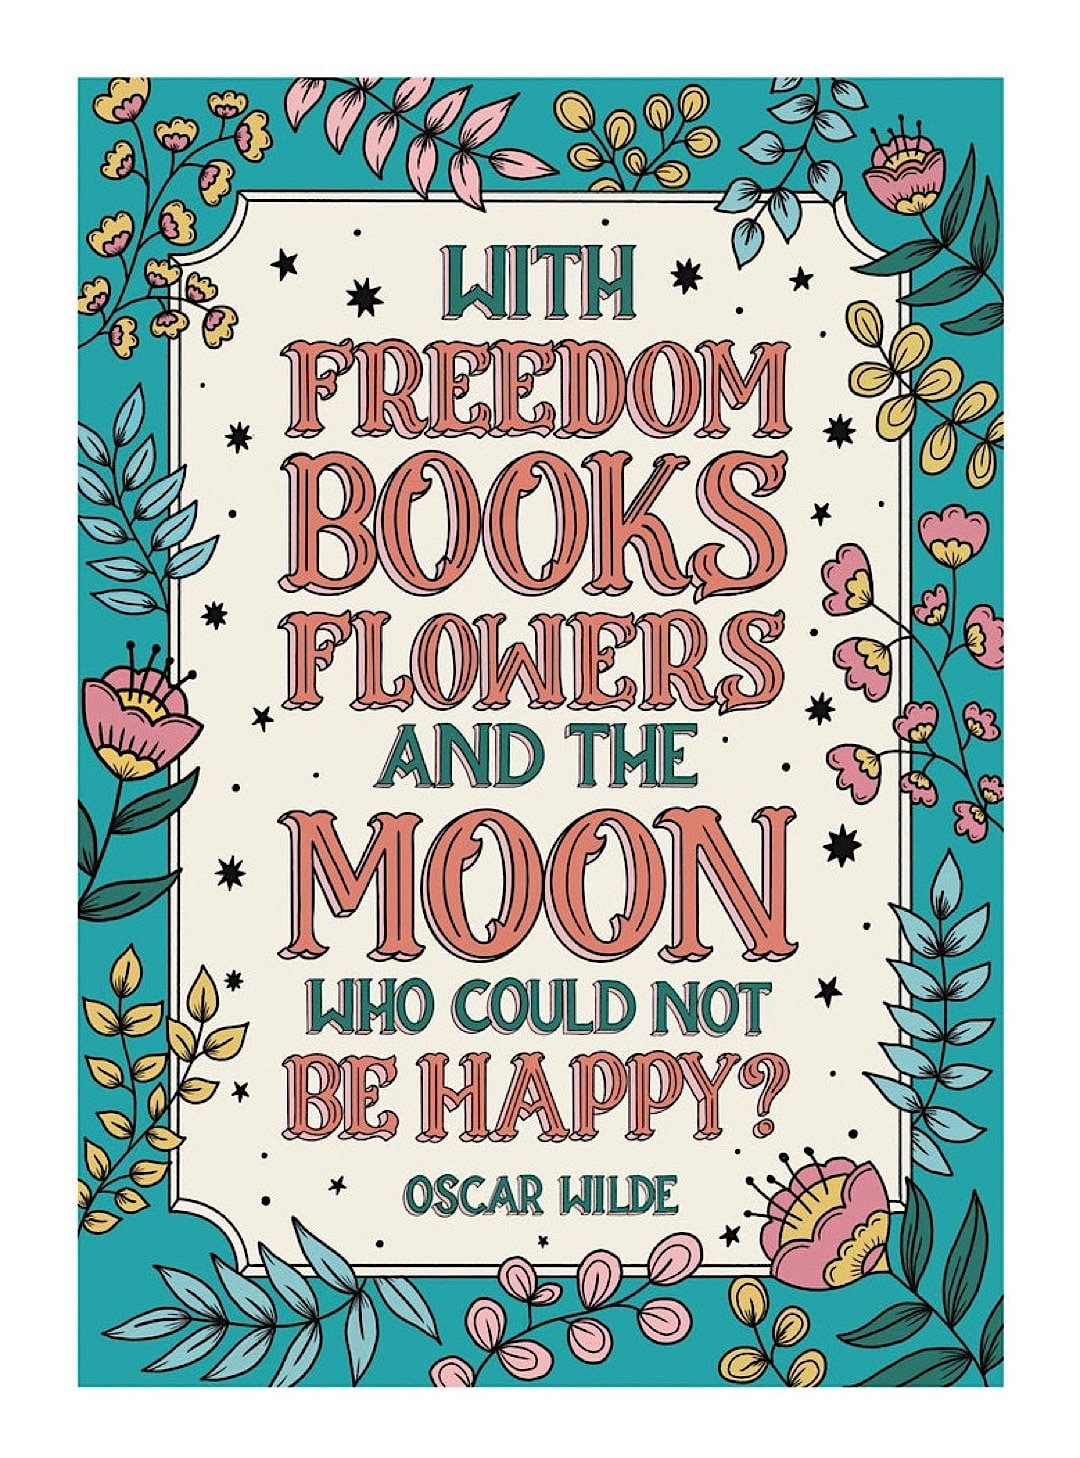 Flowers books quote - best read posters